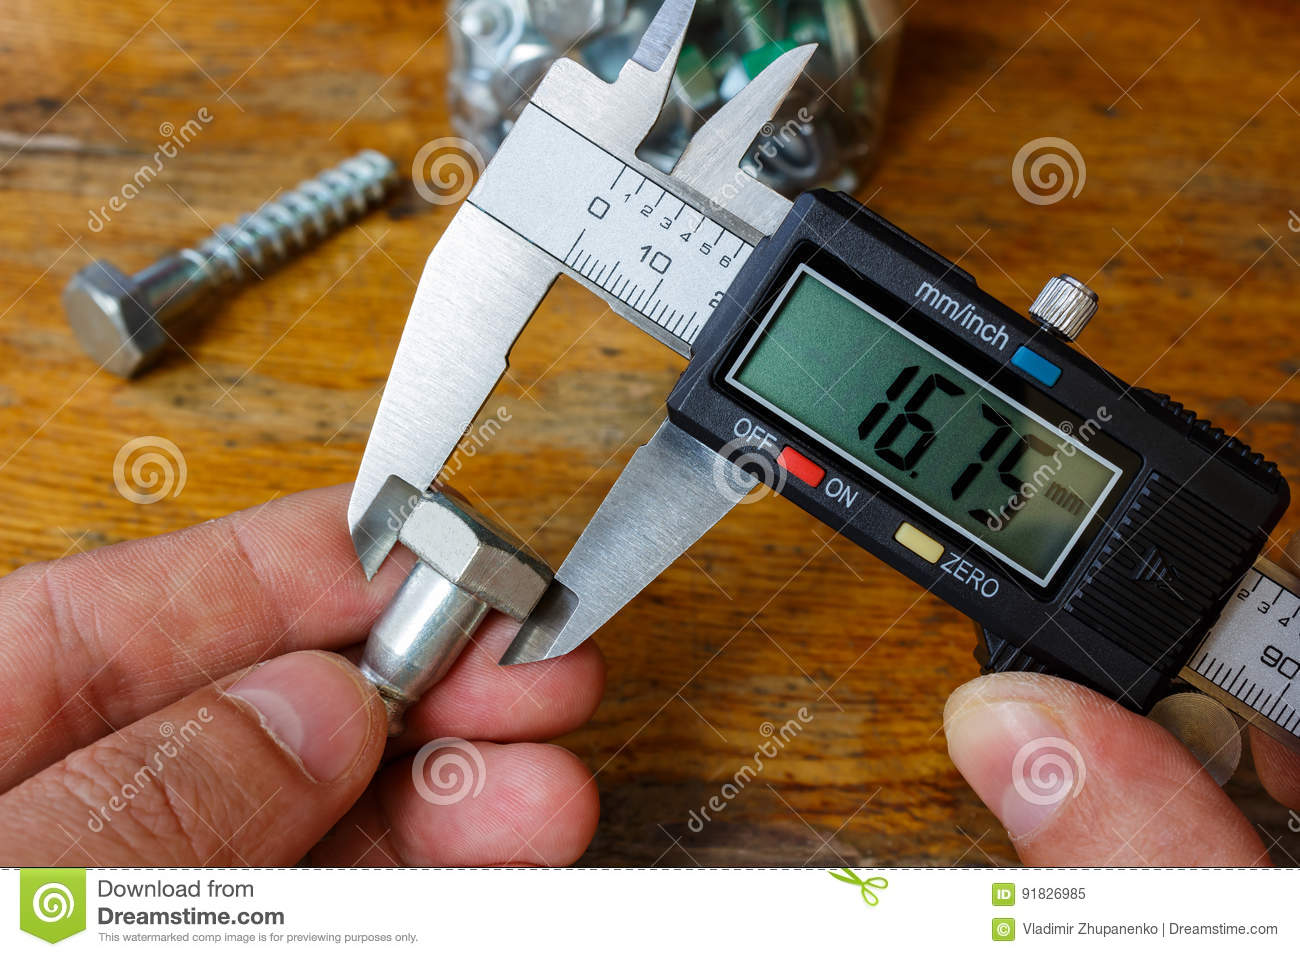 Measurement of the bolt head with an electronic caliper